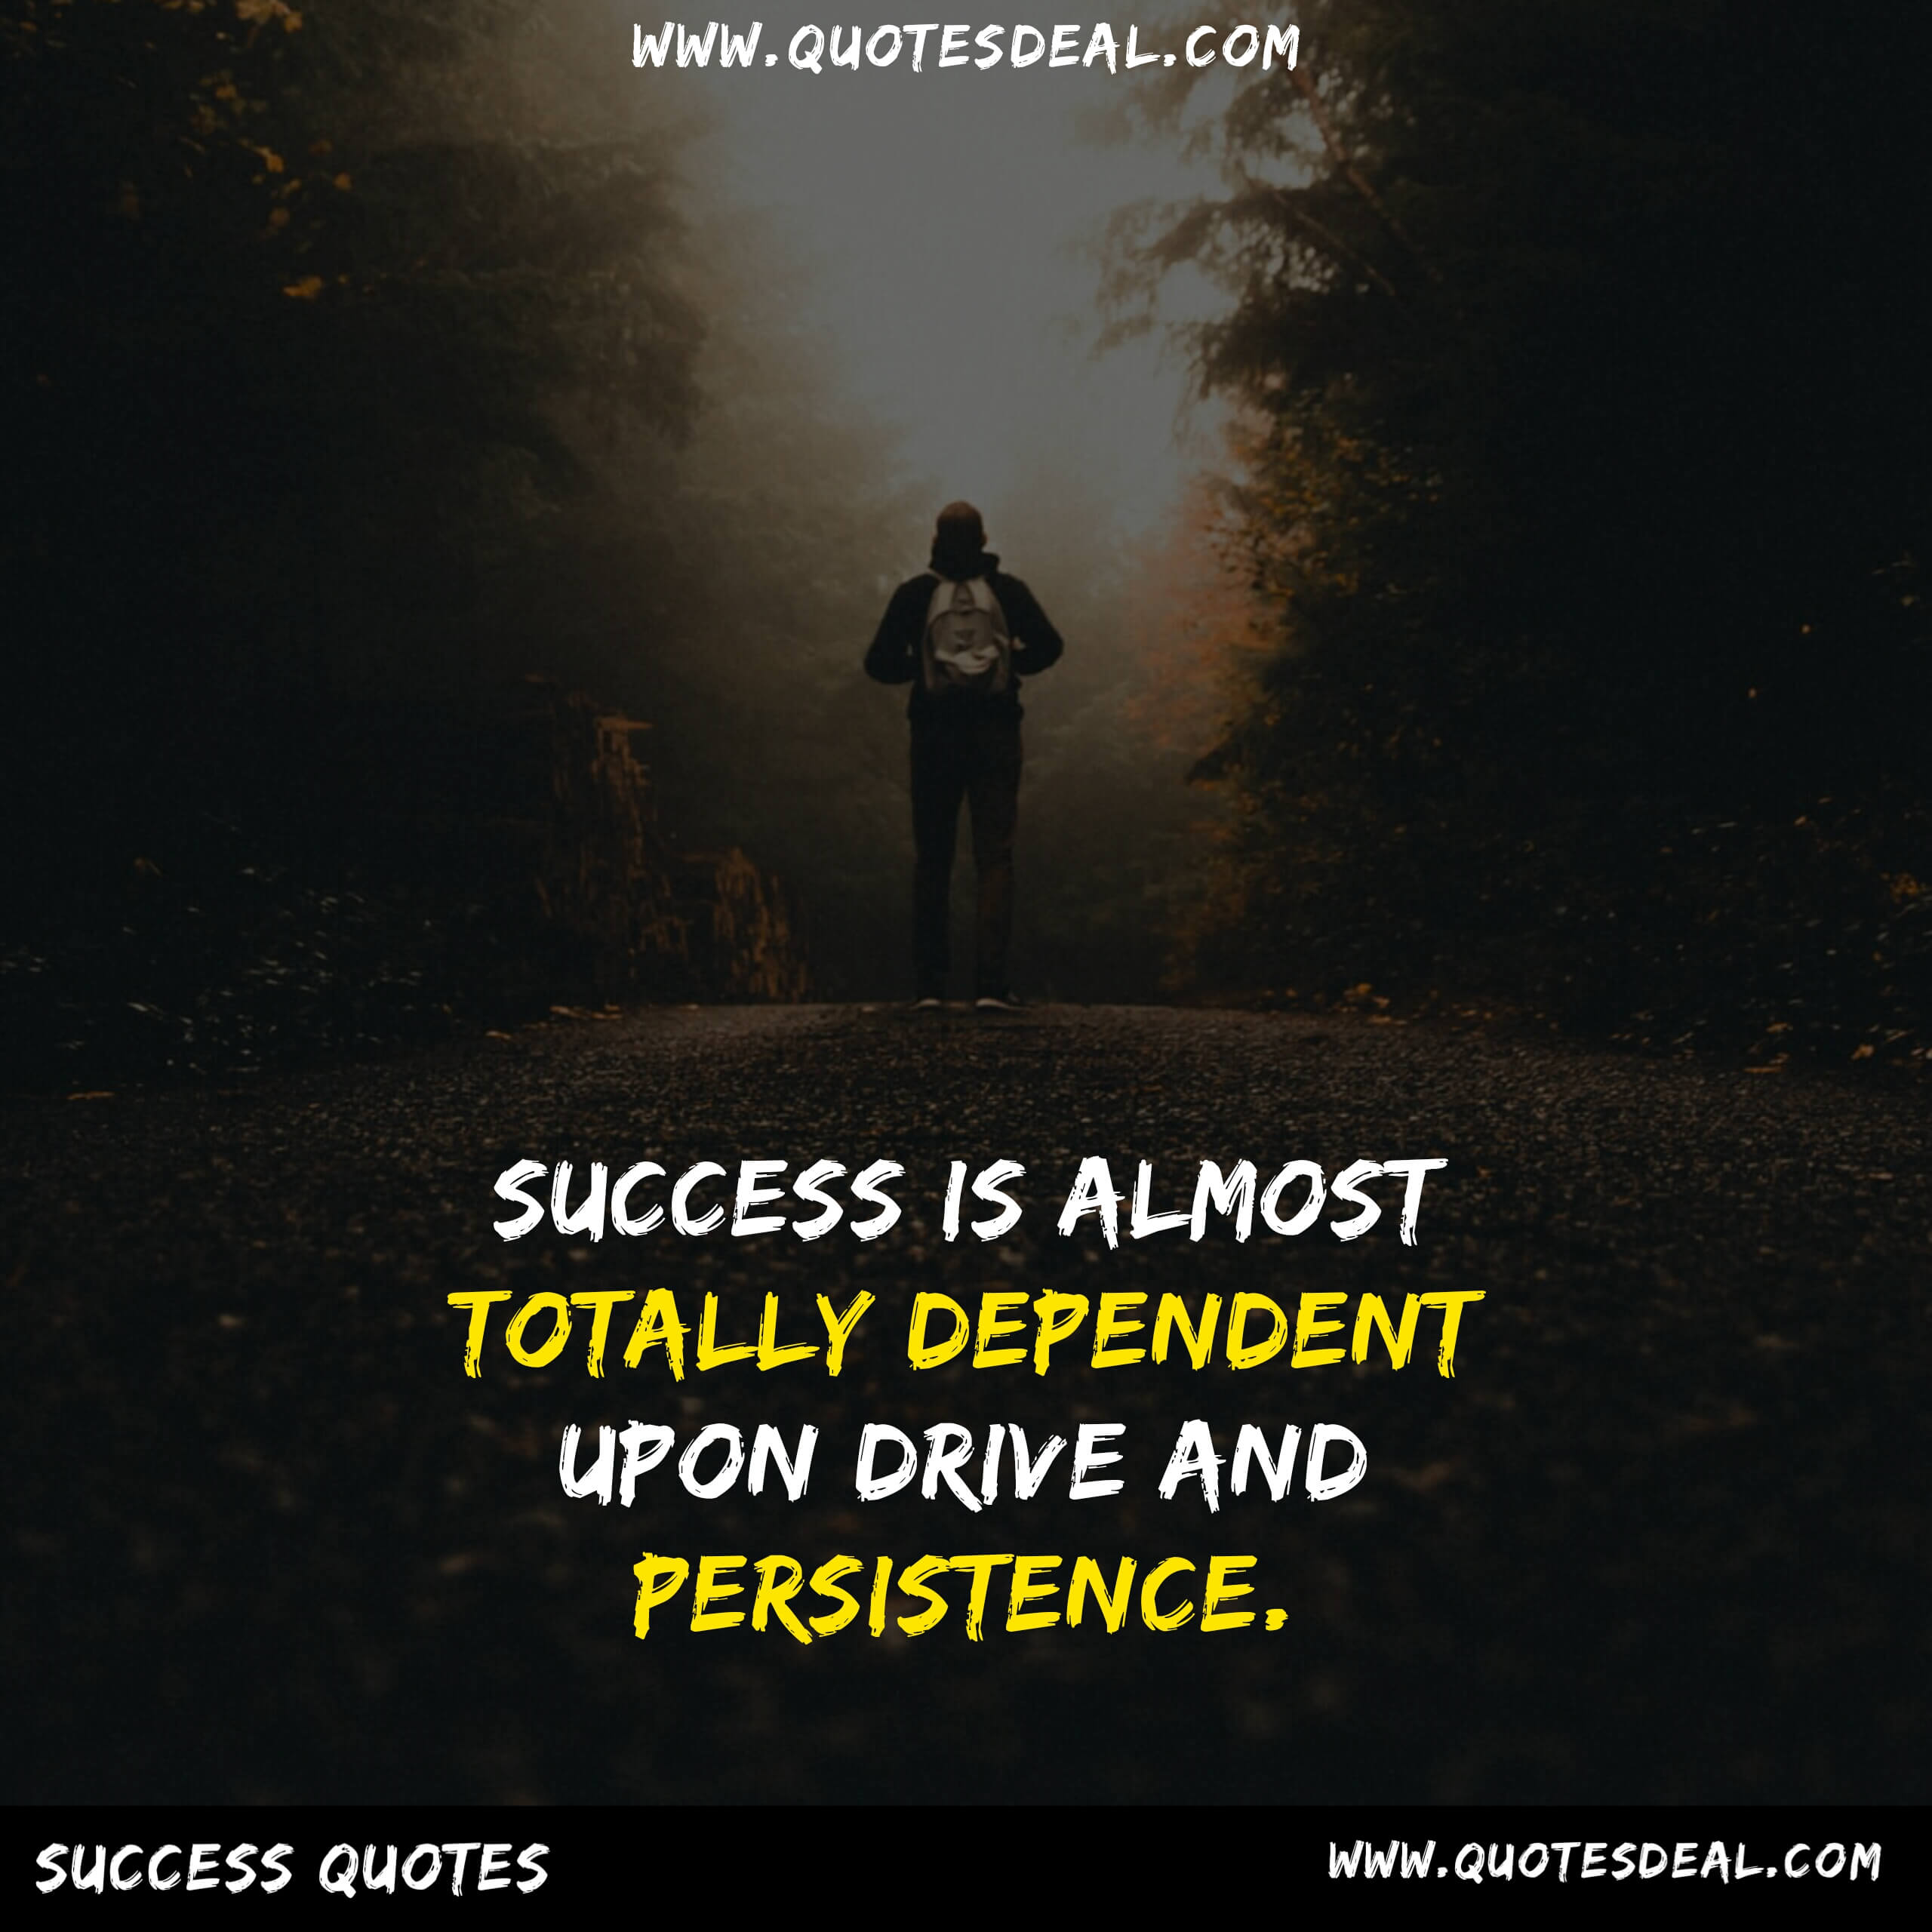 Success is almost totally